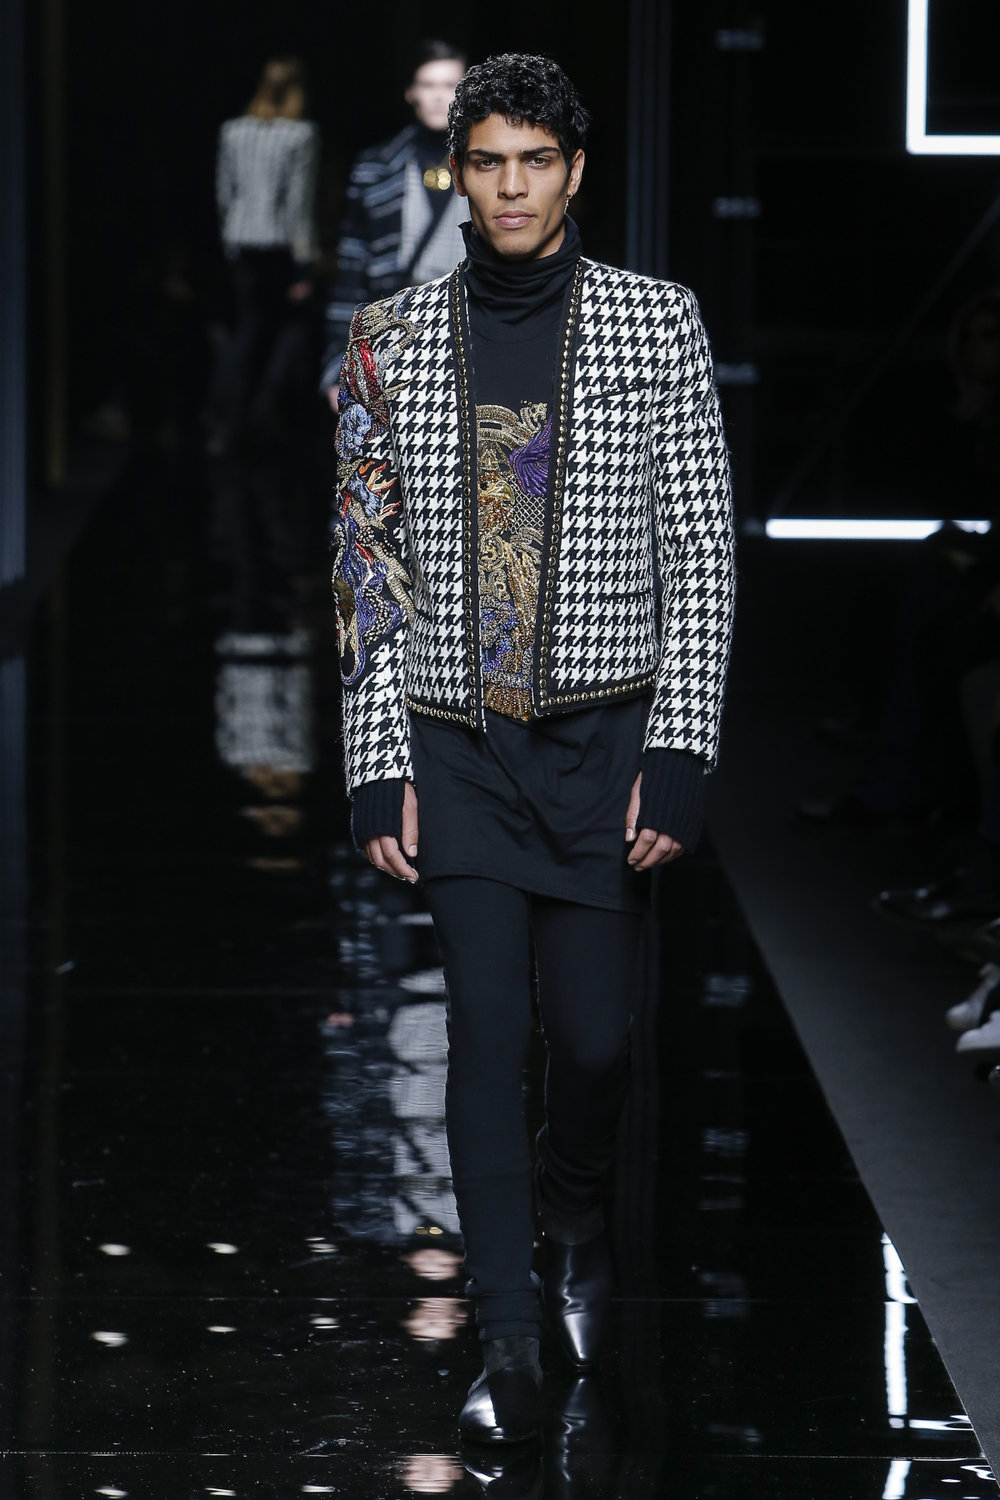 balmain_look_44_2017_aw_mens.jpeg